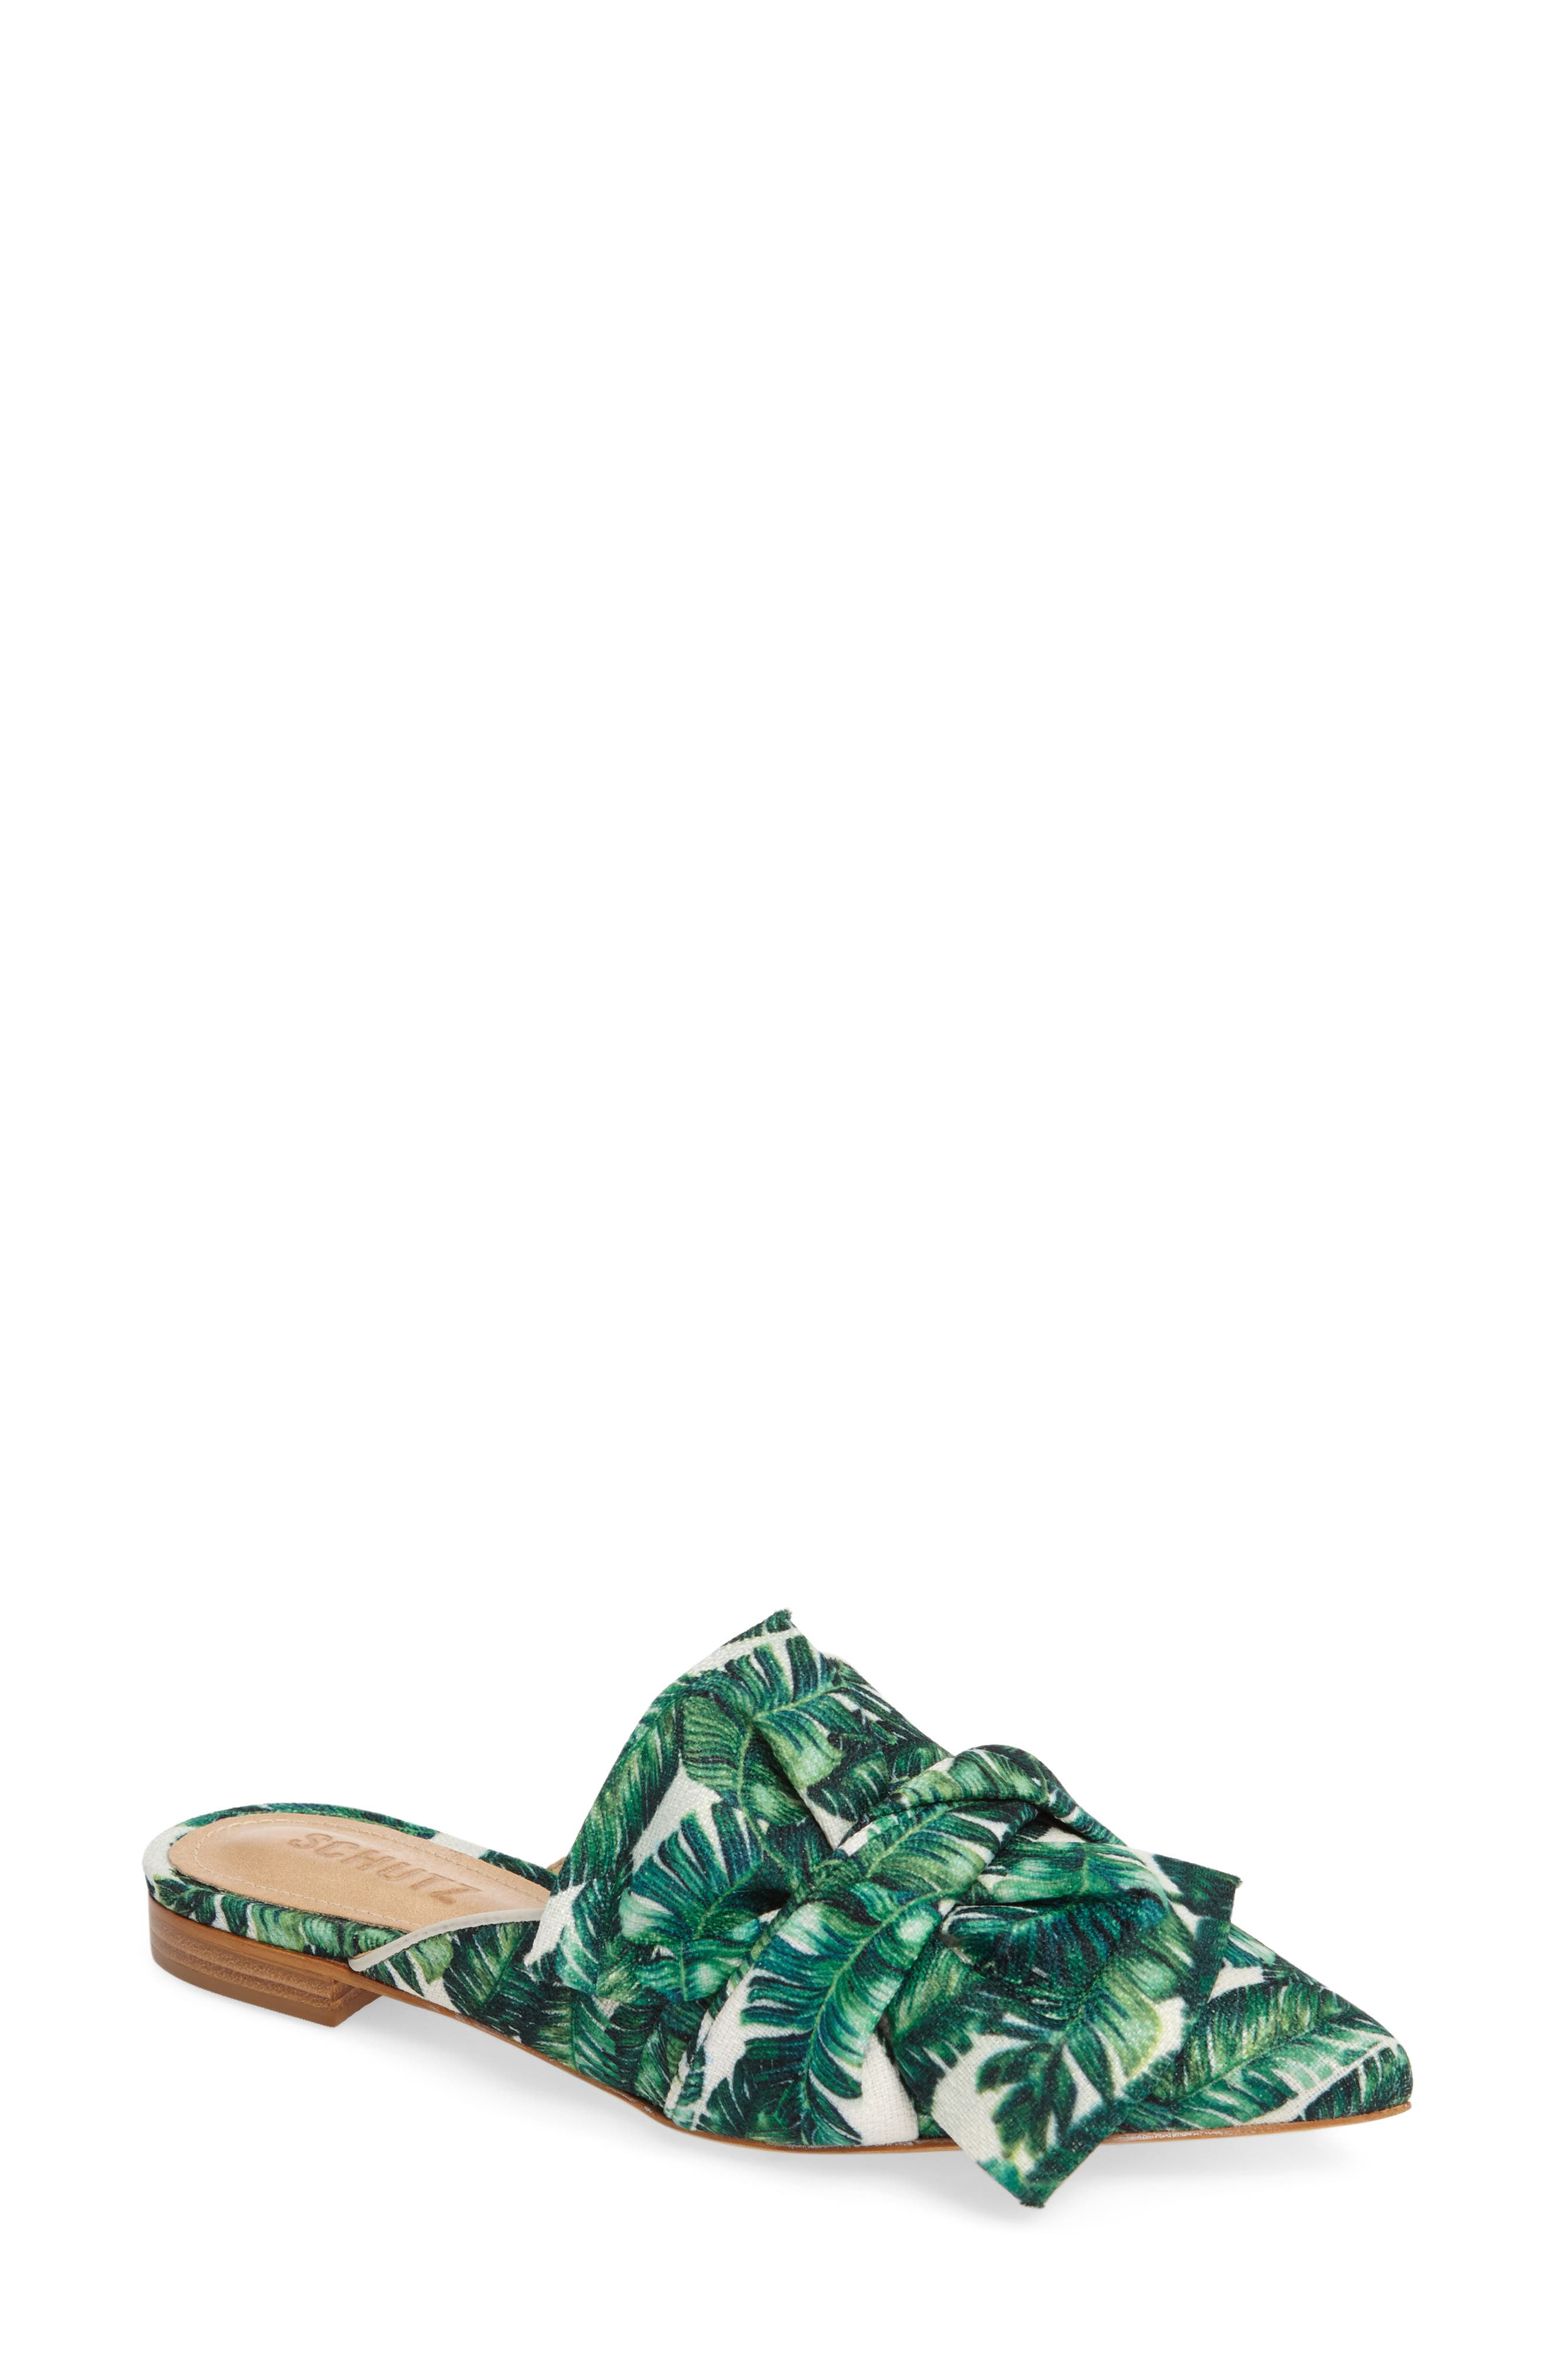 Alternate Image 1 Selected - Schutz D'Ana Knotted Loafer Mule (Women)